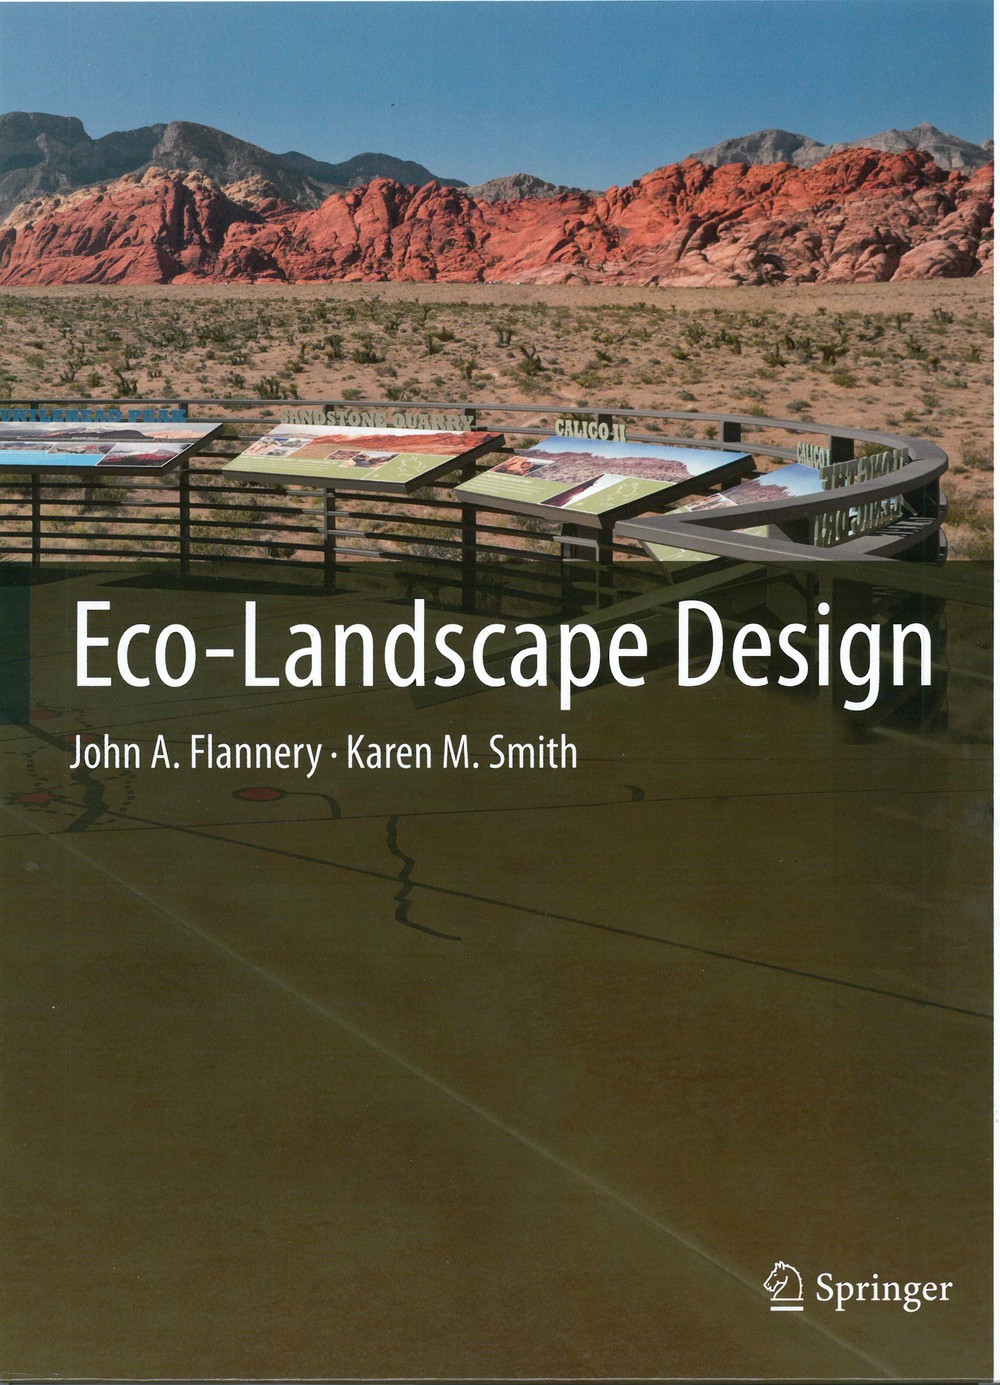 Eco-Landscape Design_cover.jpg